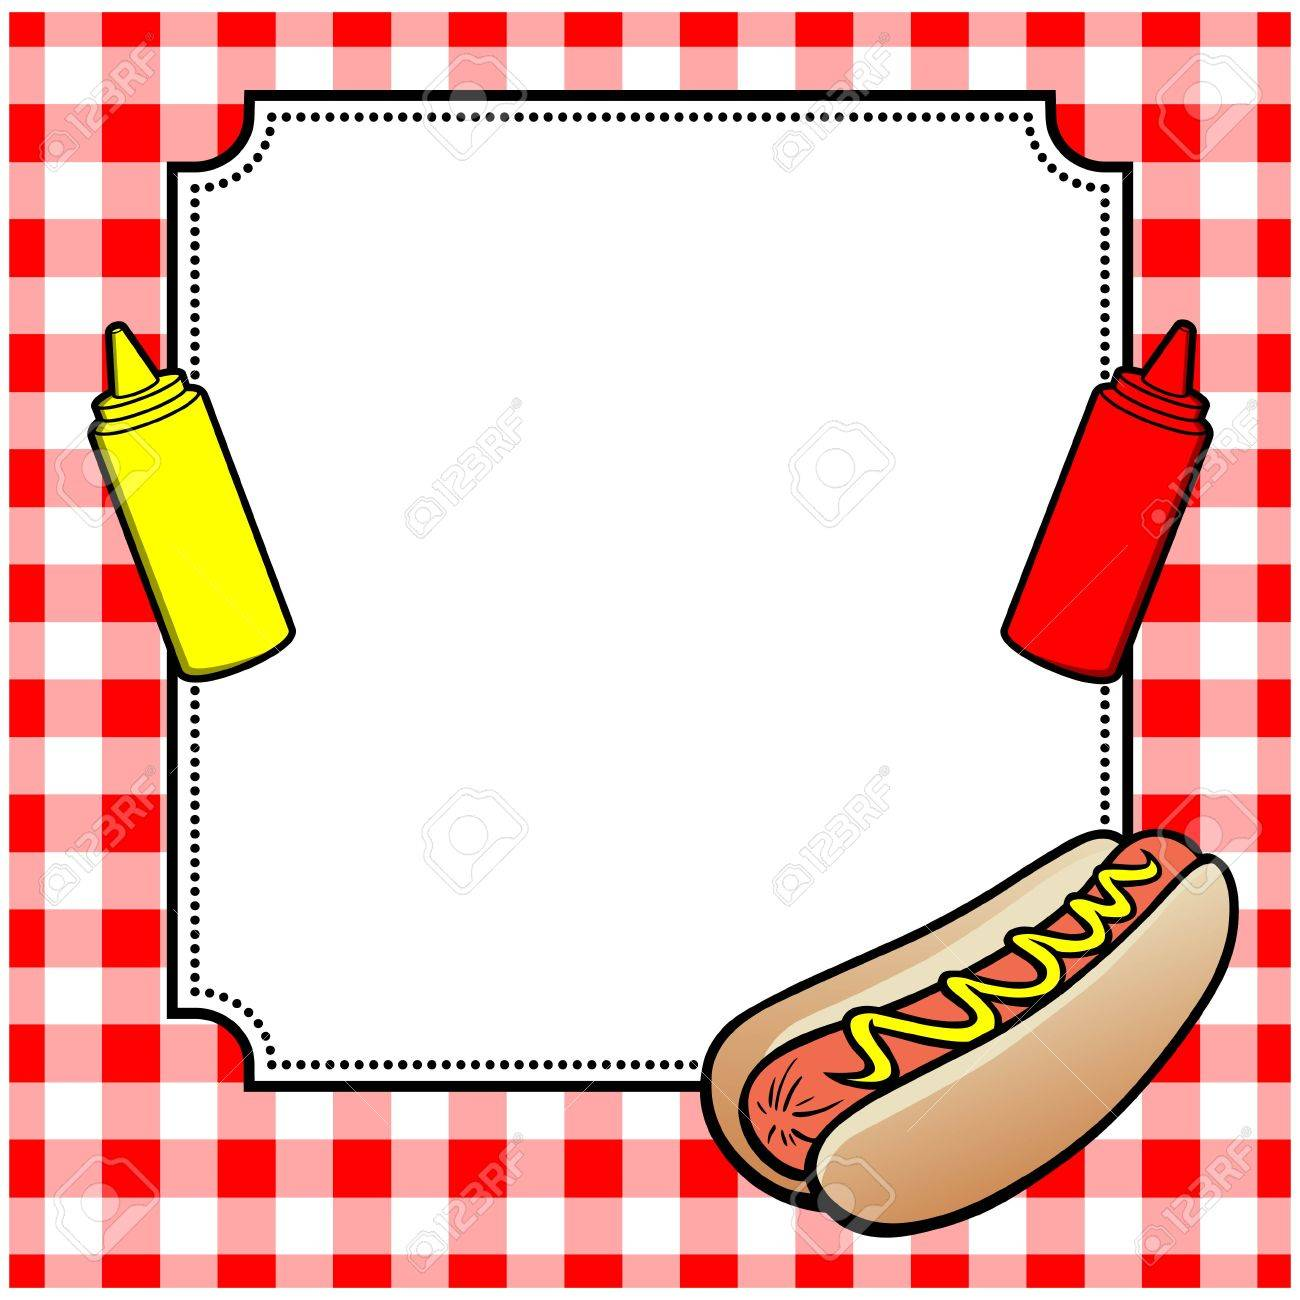 Hot Dog Cookout Invite.